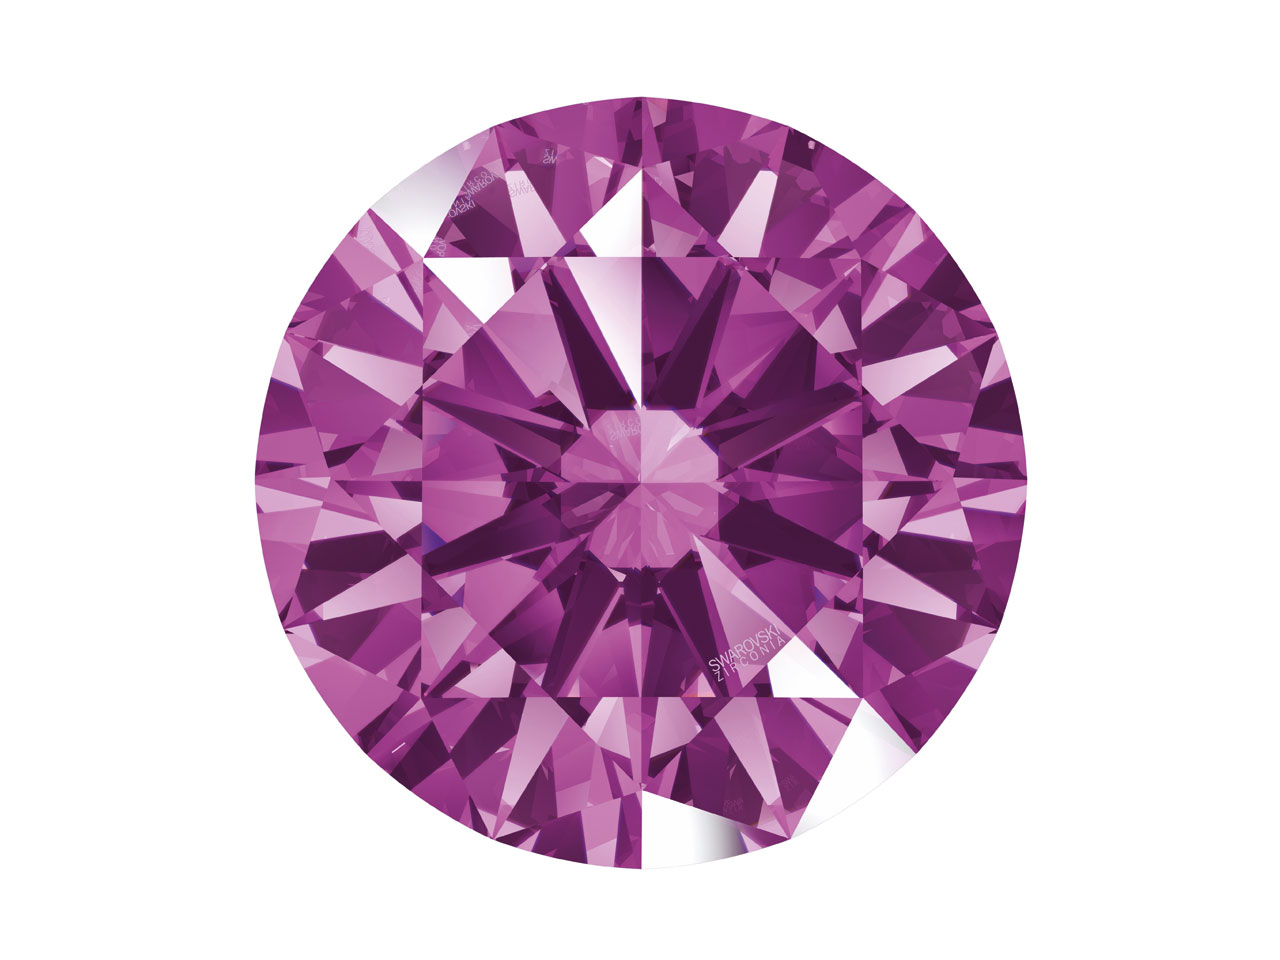 Swarovski Zirconia Round           Pure Brilliance Cut 2mm Fancy      Purple